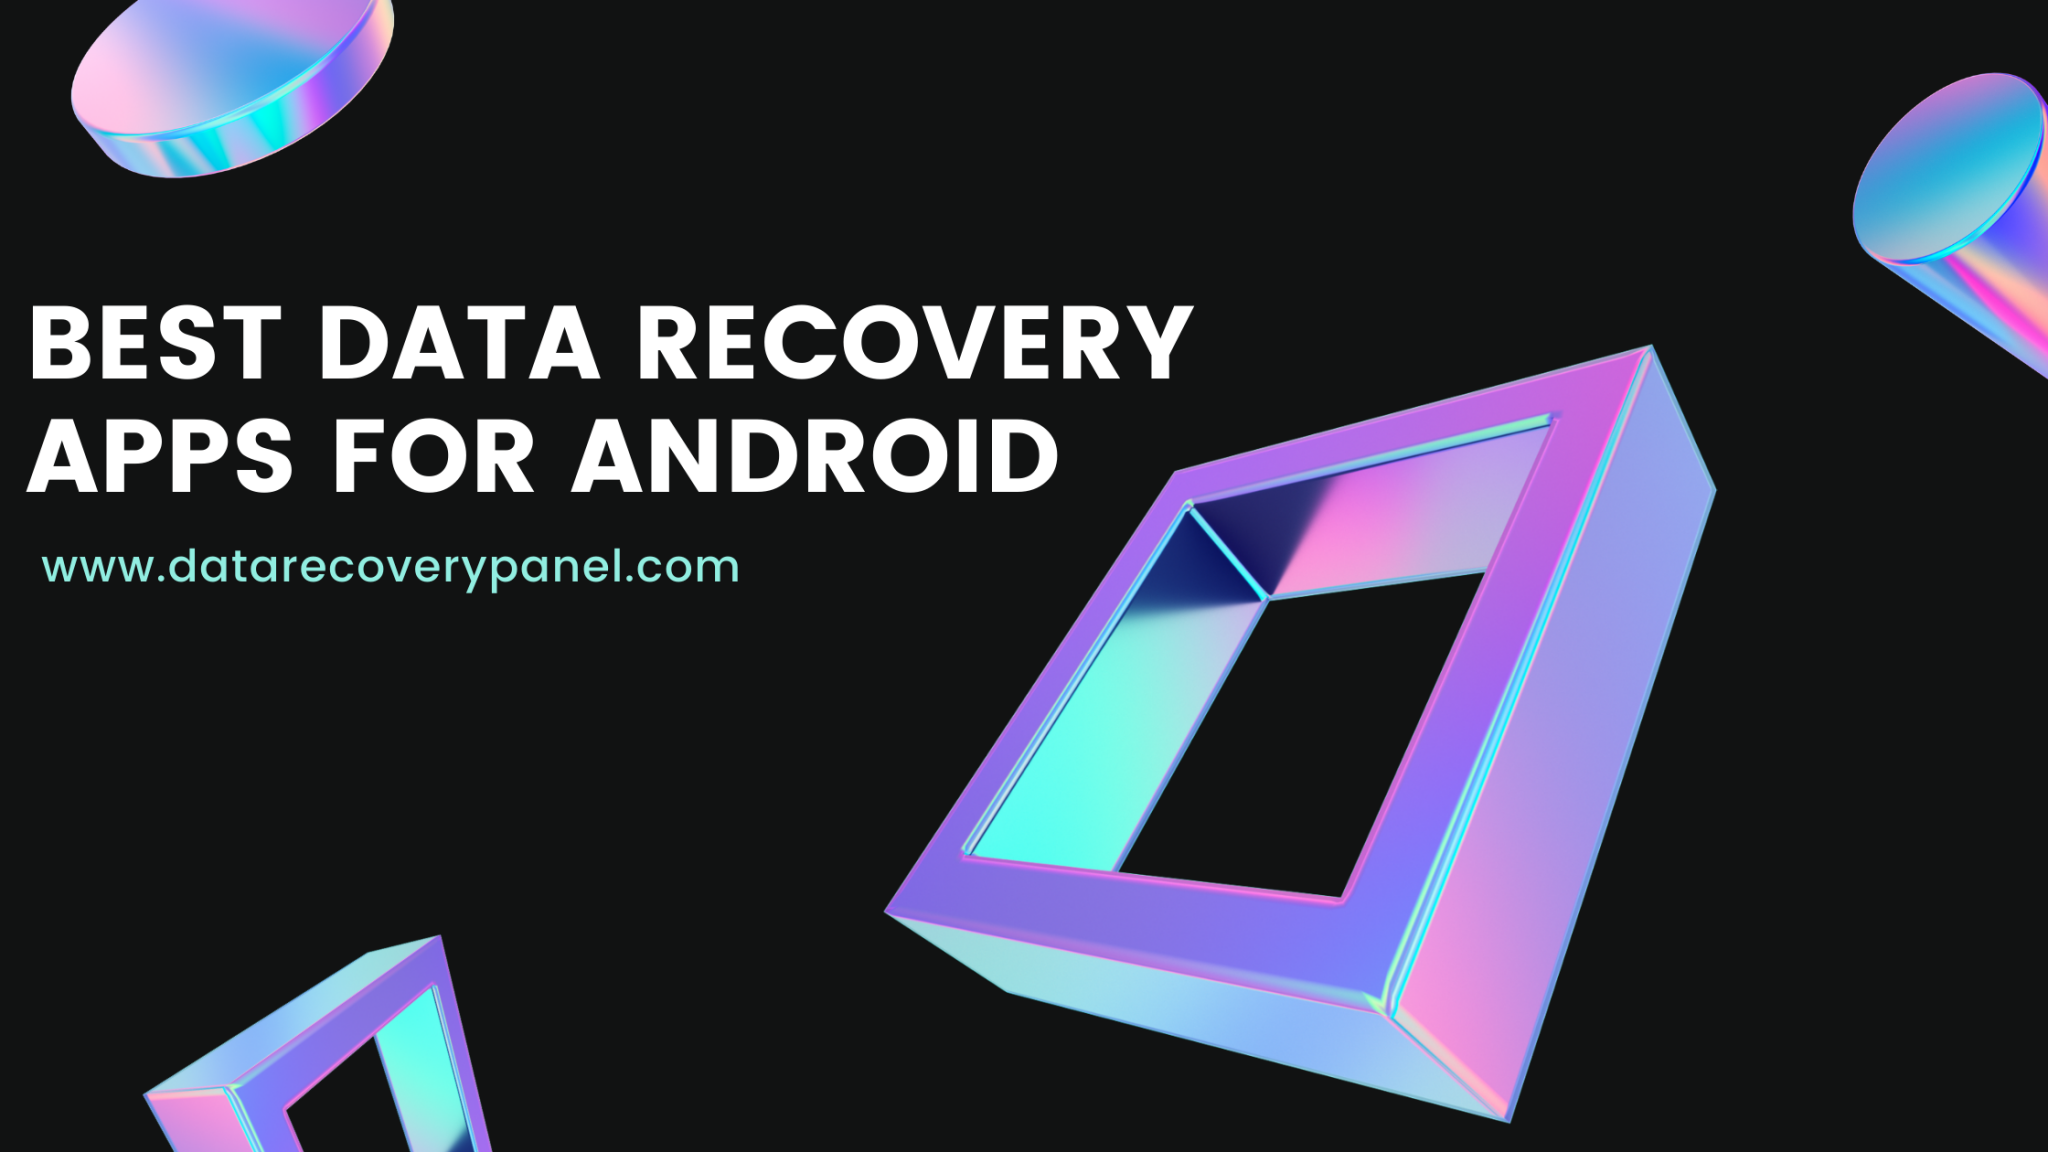 Data Recovery Apps For Android